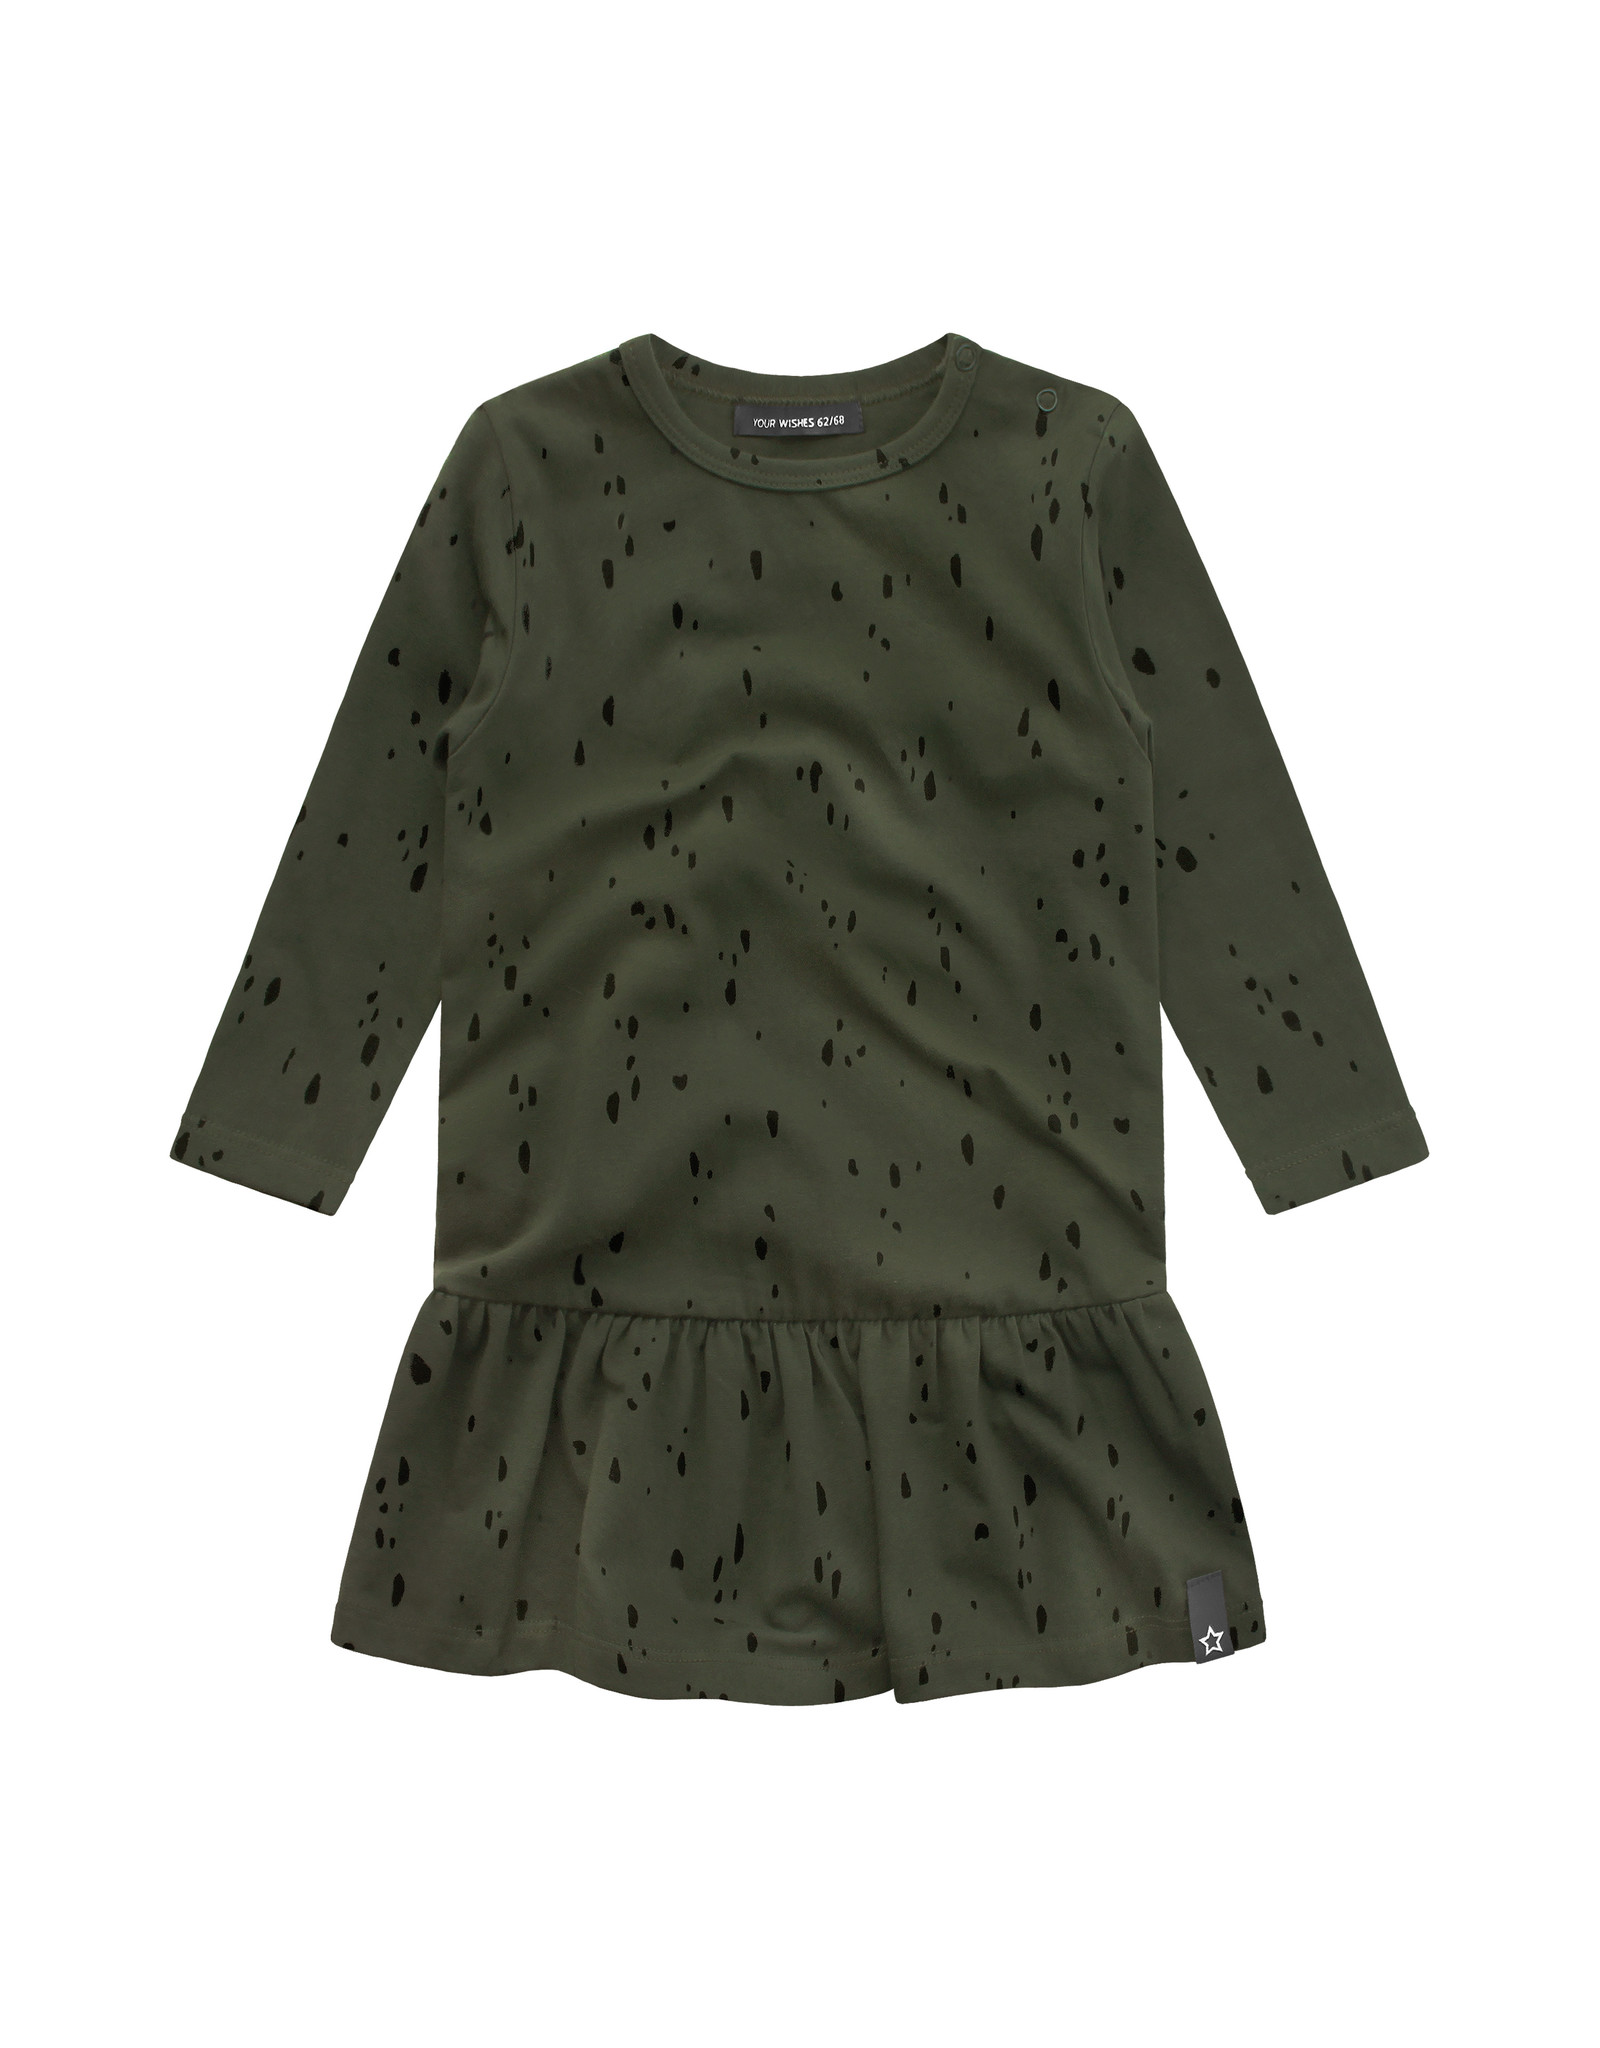 Your Wishes YW | Splatters | Shift Dress | Desk Green